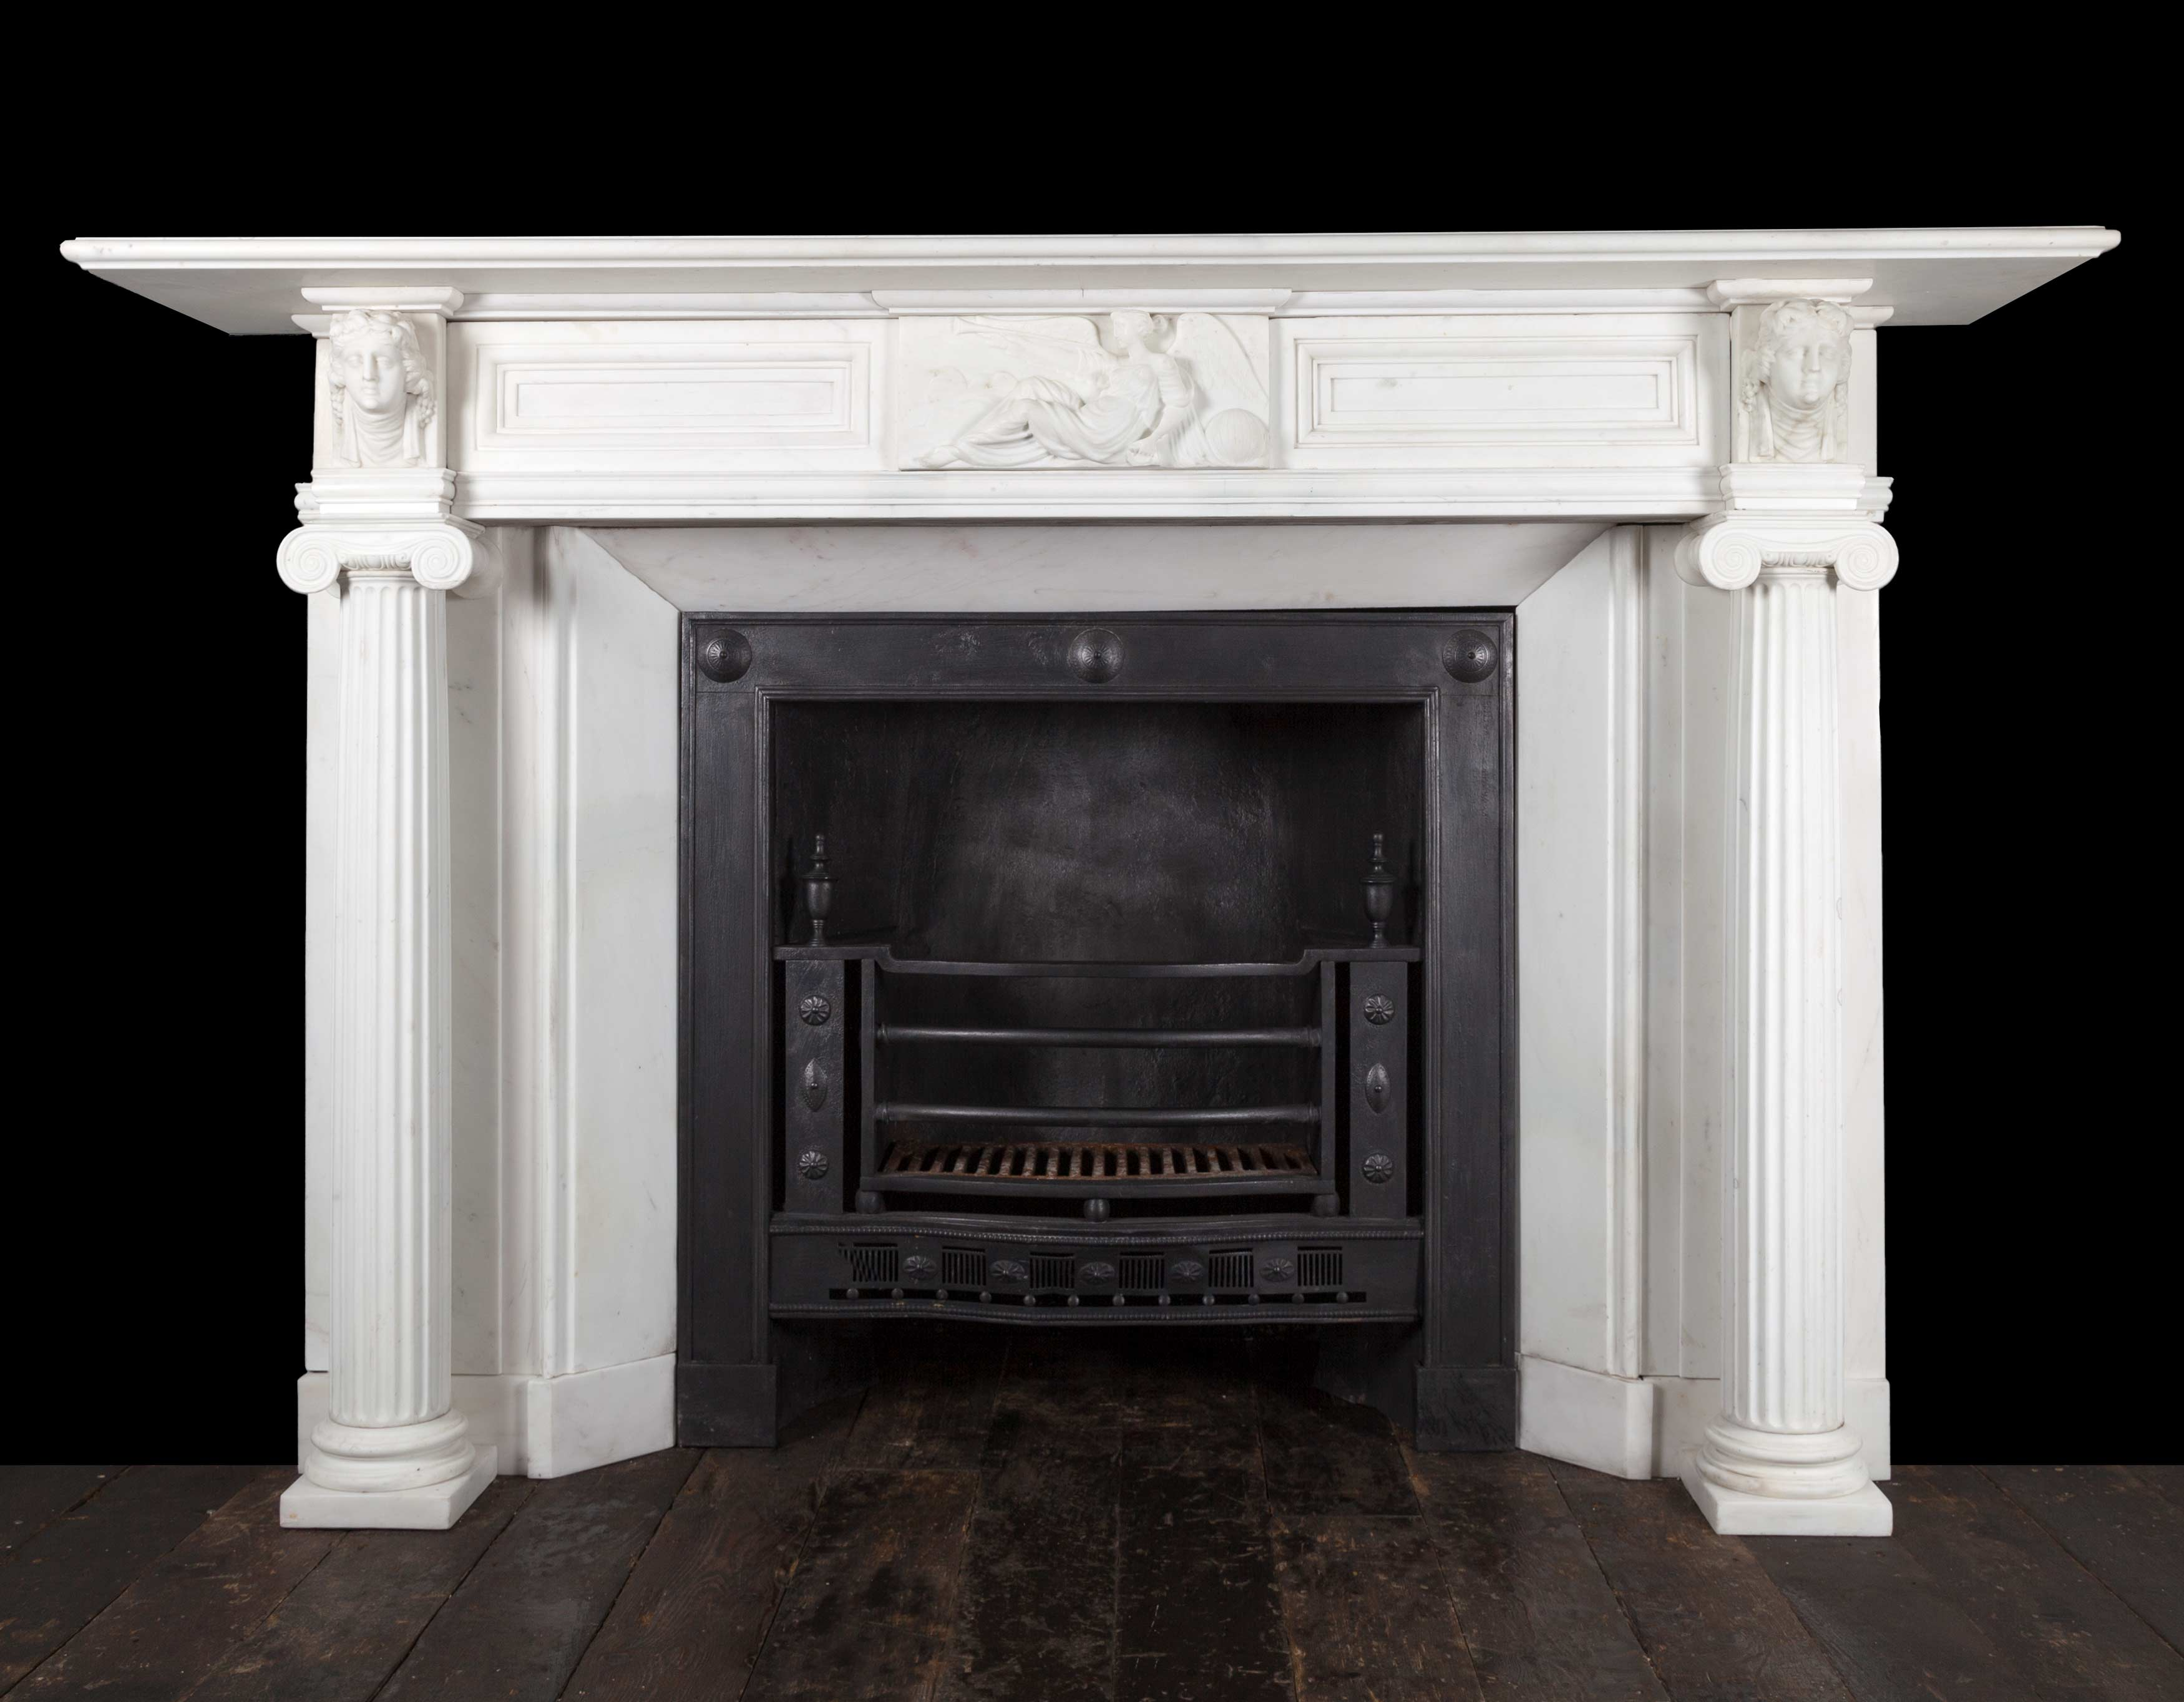 Regency Fireplace 19305 19th Century 19th Century Marble Antique Fireplaces Antique Marble Fireplaces Exceptional Pieces Georgian Neoclassical Regency Ryan Smith Antique Fireplaces Ireland